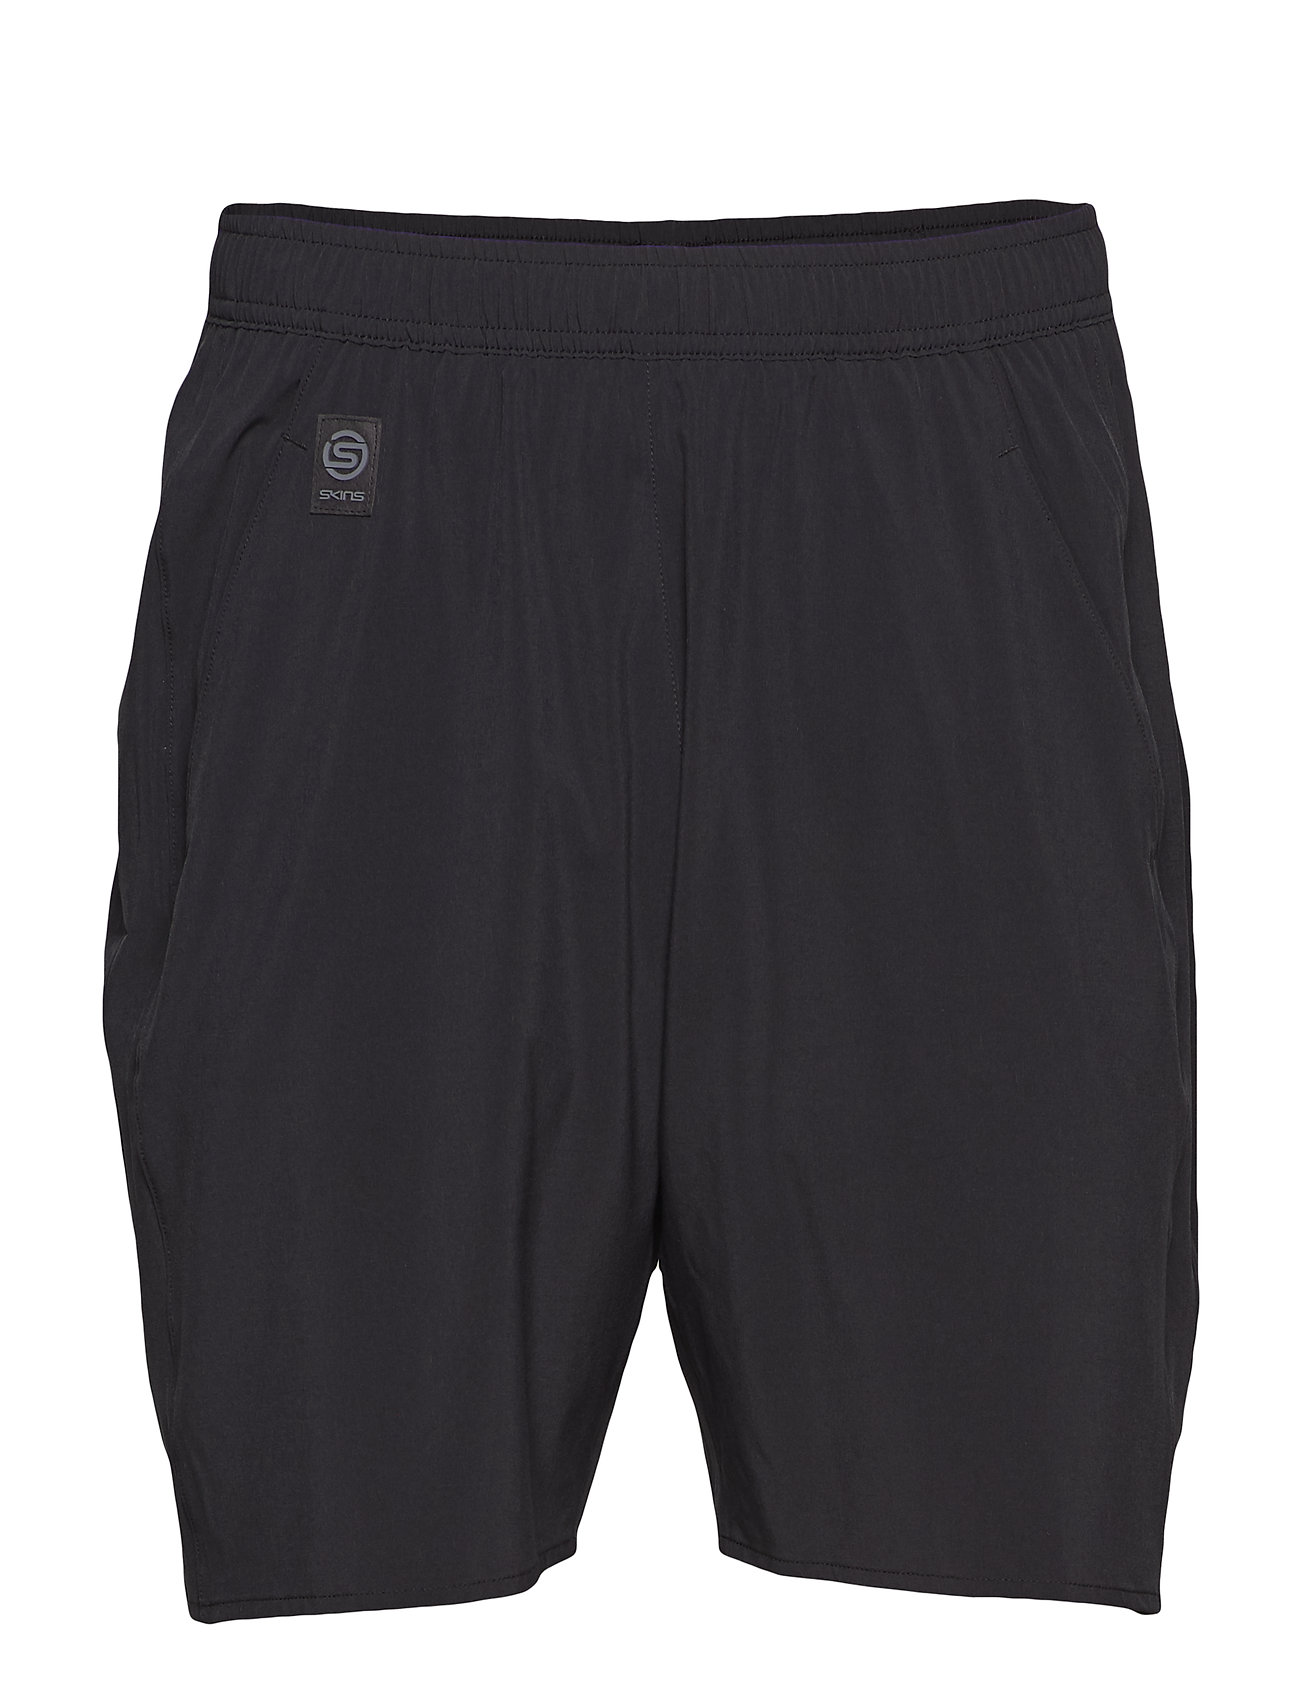 Skins Activewear Square Mens Short 7 - BLACK